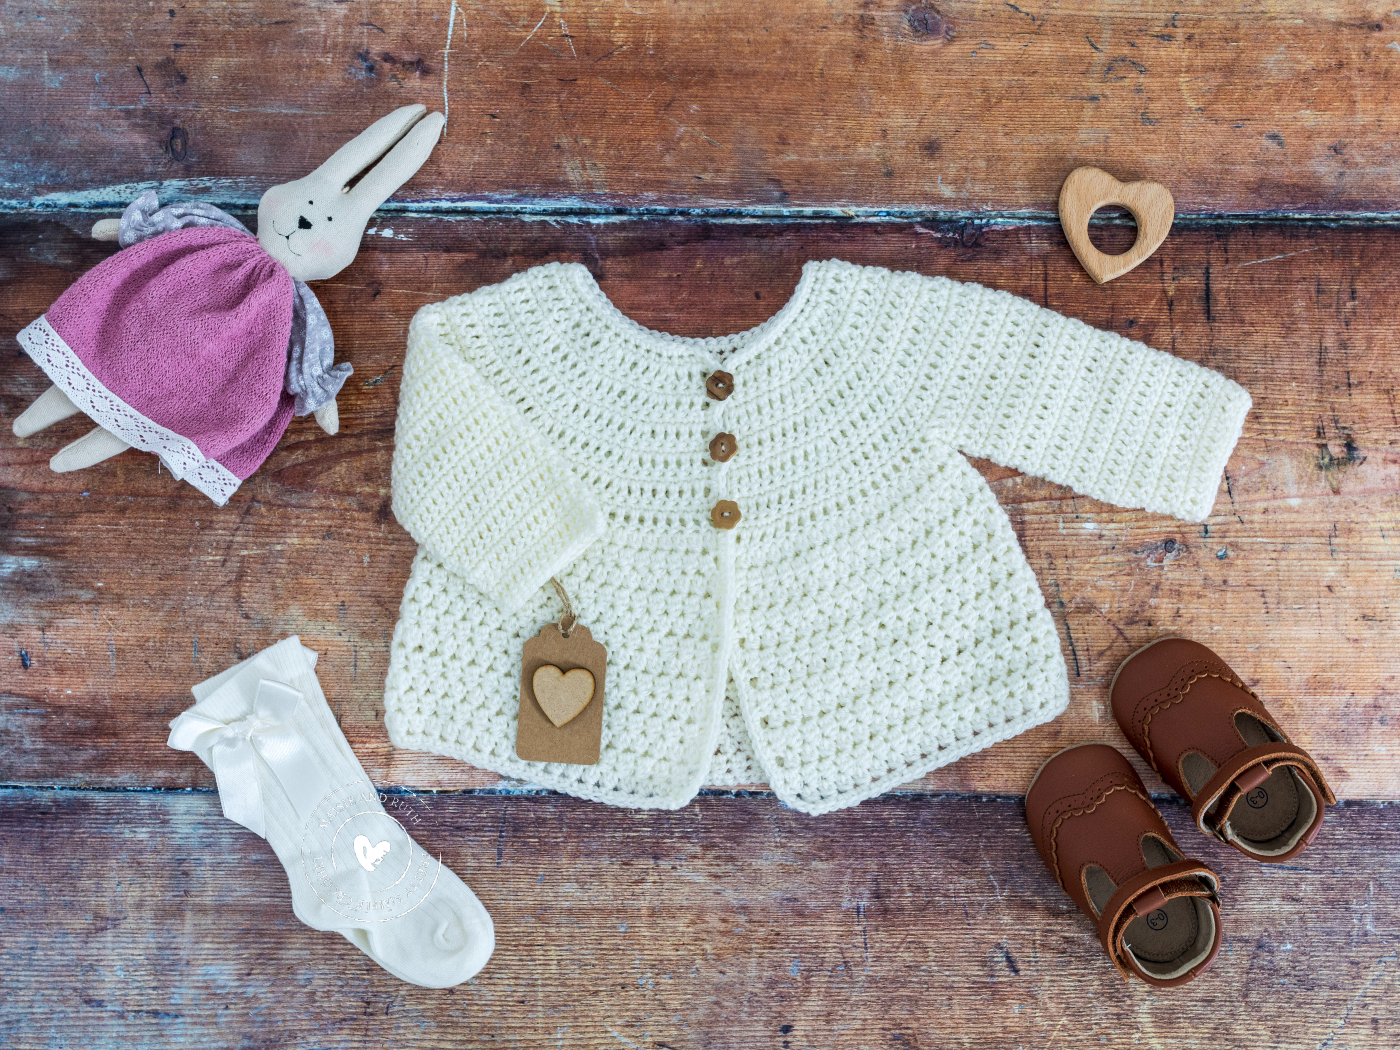 Crochet Baby Cardigan Pattern with socks and bunny